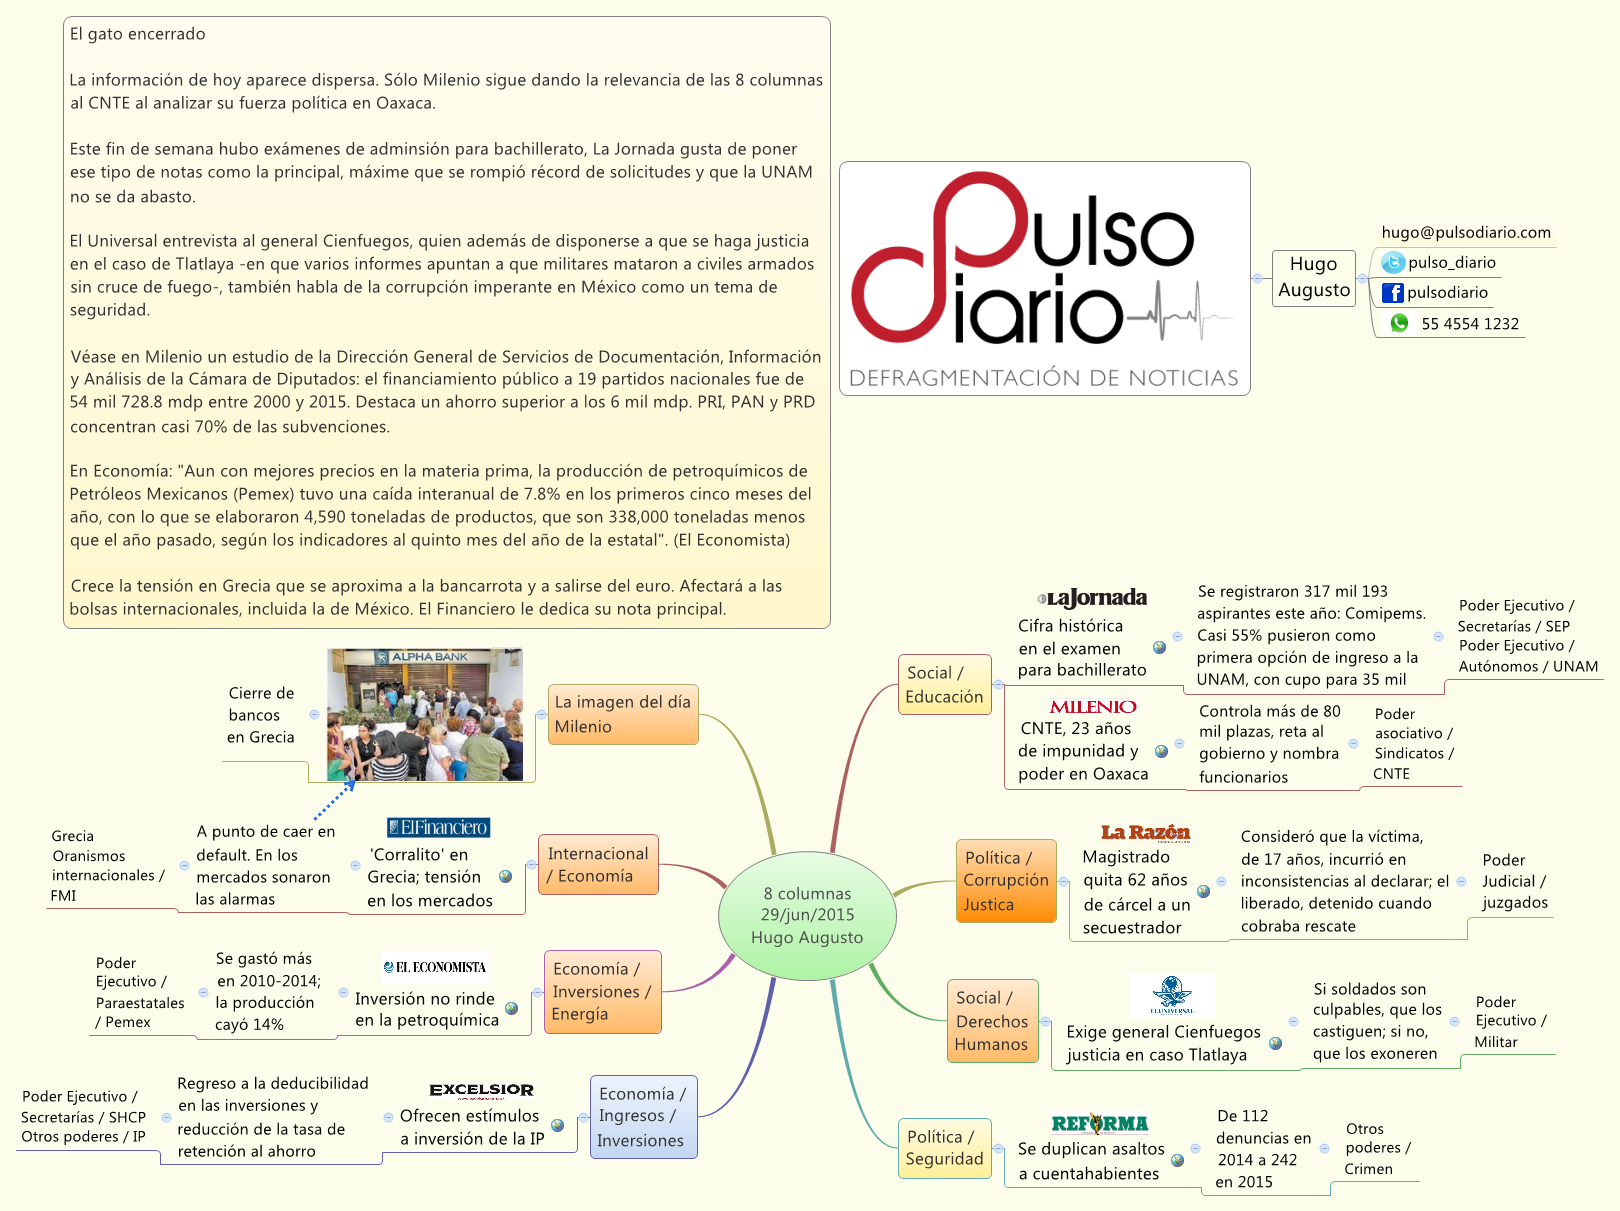 8 columnas 29/jun/2015 Hugo Augusto - Hugo_Augusto - XMind: The Most Professional Mind Mapping Software